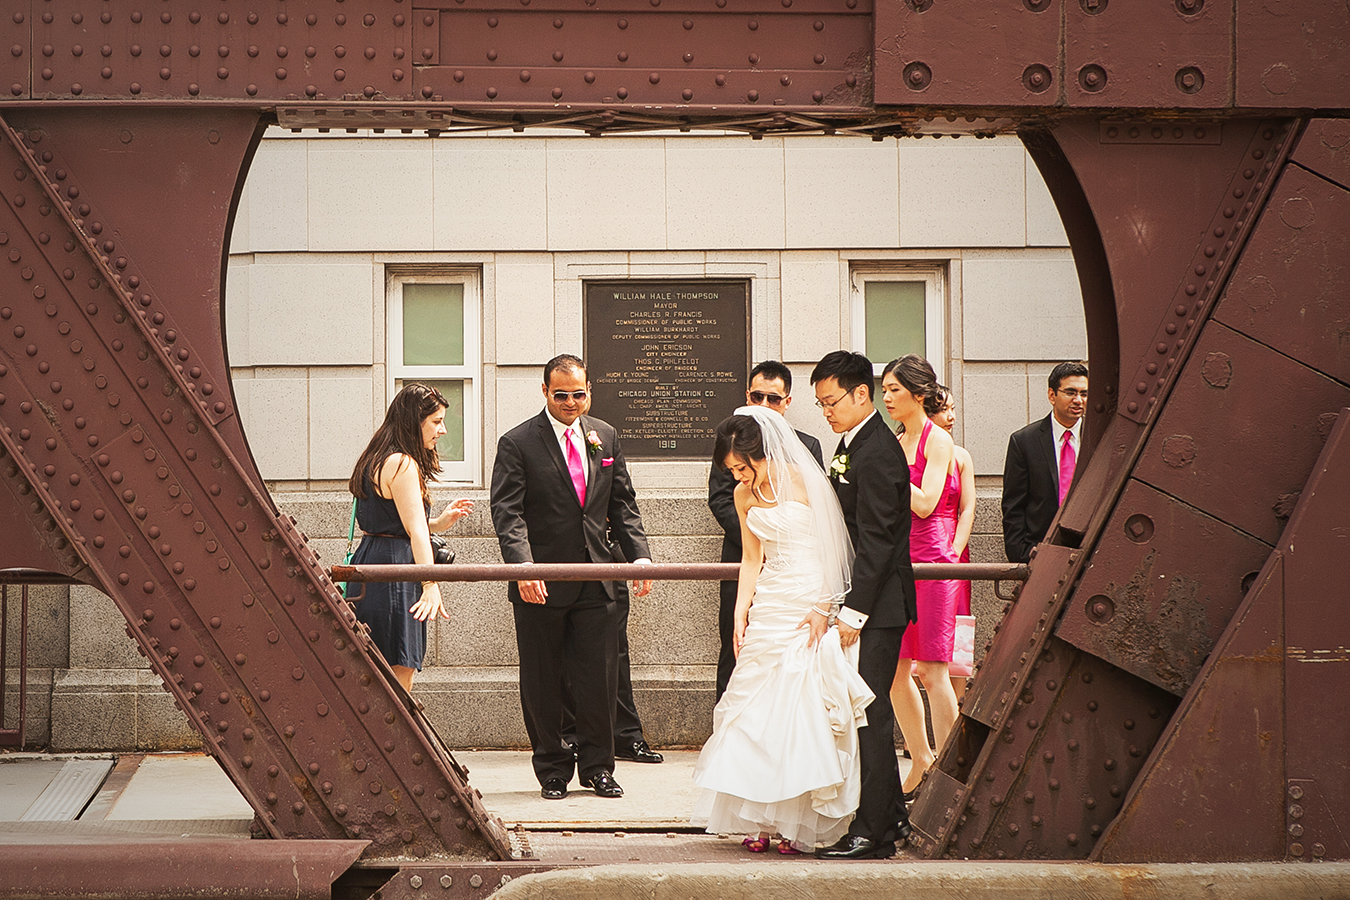 There I am placing everyone for a bridal party shot! Those are some super expressive hand gestures :)